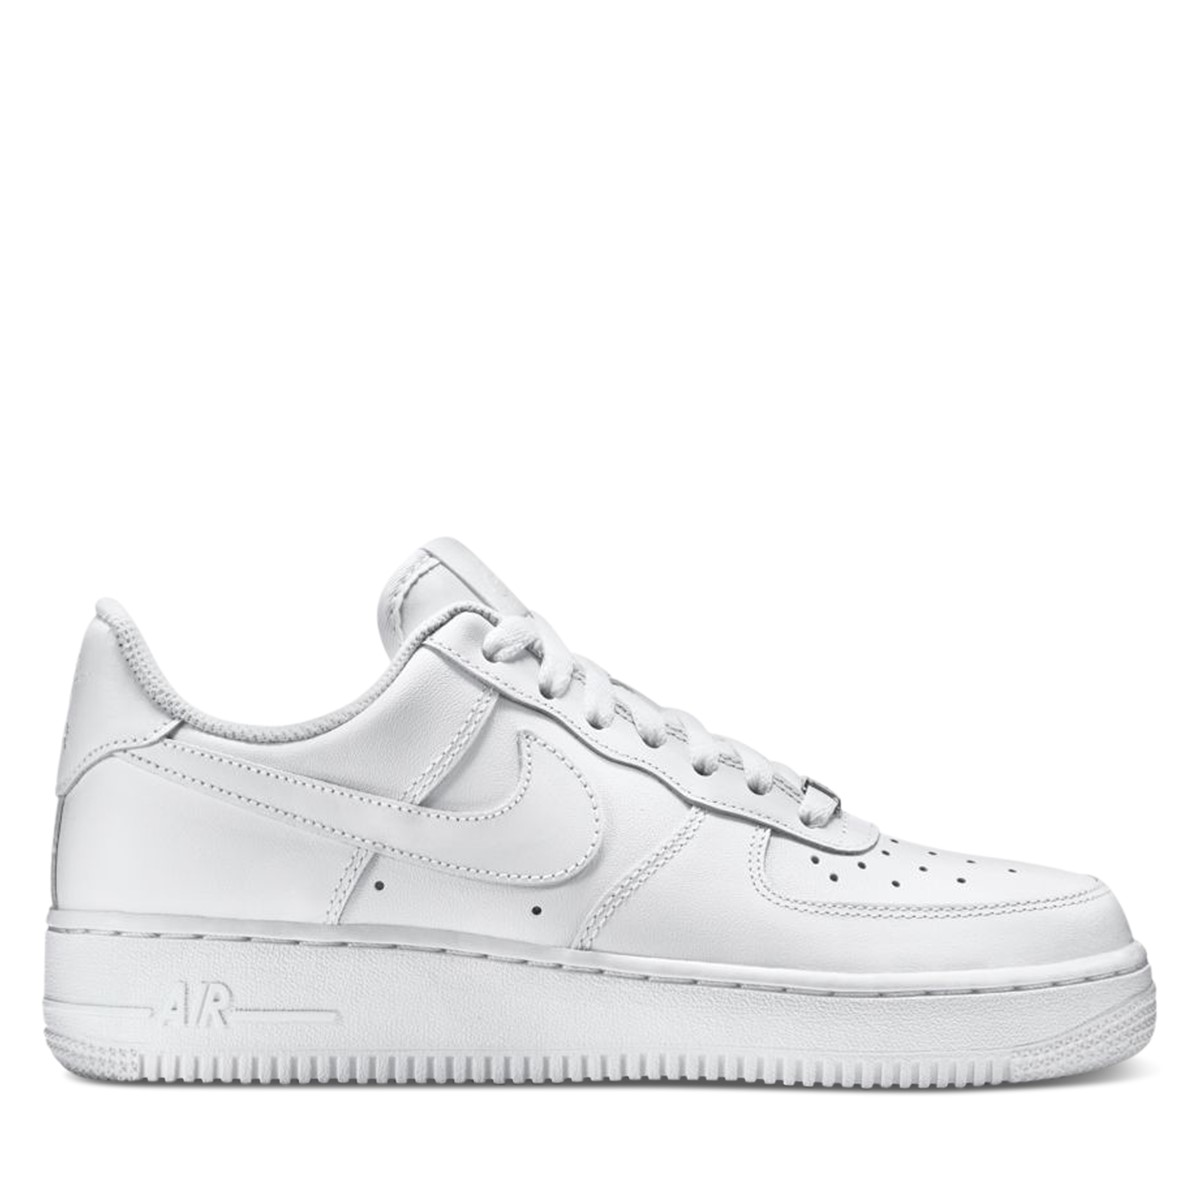 Women's Air Force 1 '07 Sneakers in White